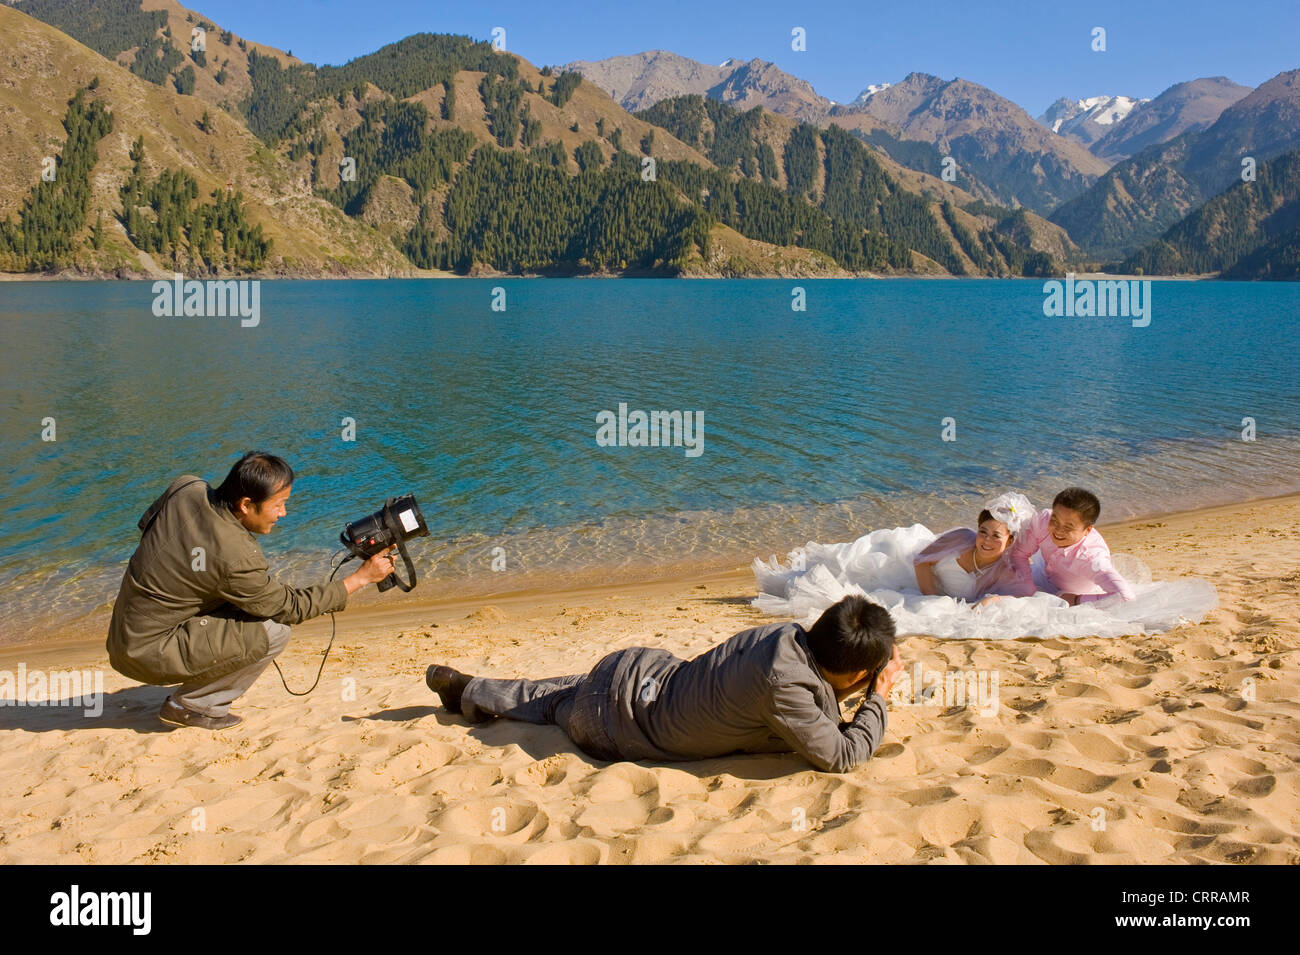 A Chinese couple pose for their wedding photographs at the popular alpine beauty spot of Heavenly Lake. Stock Photo